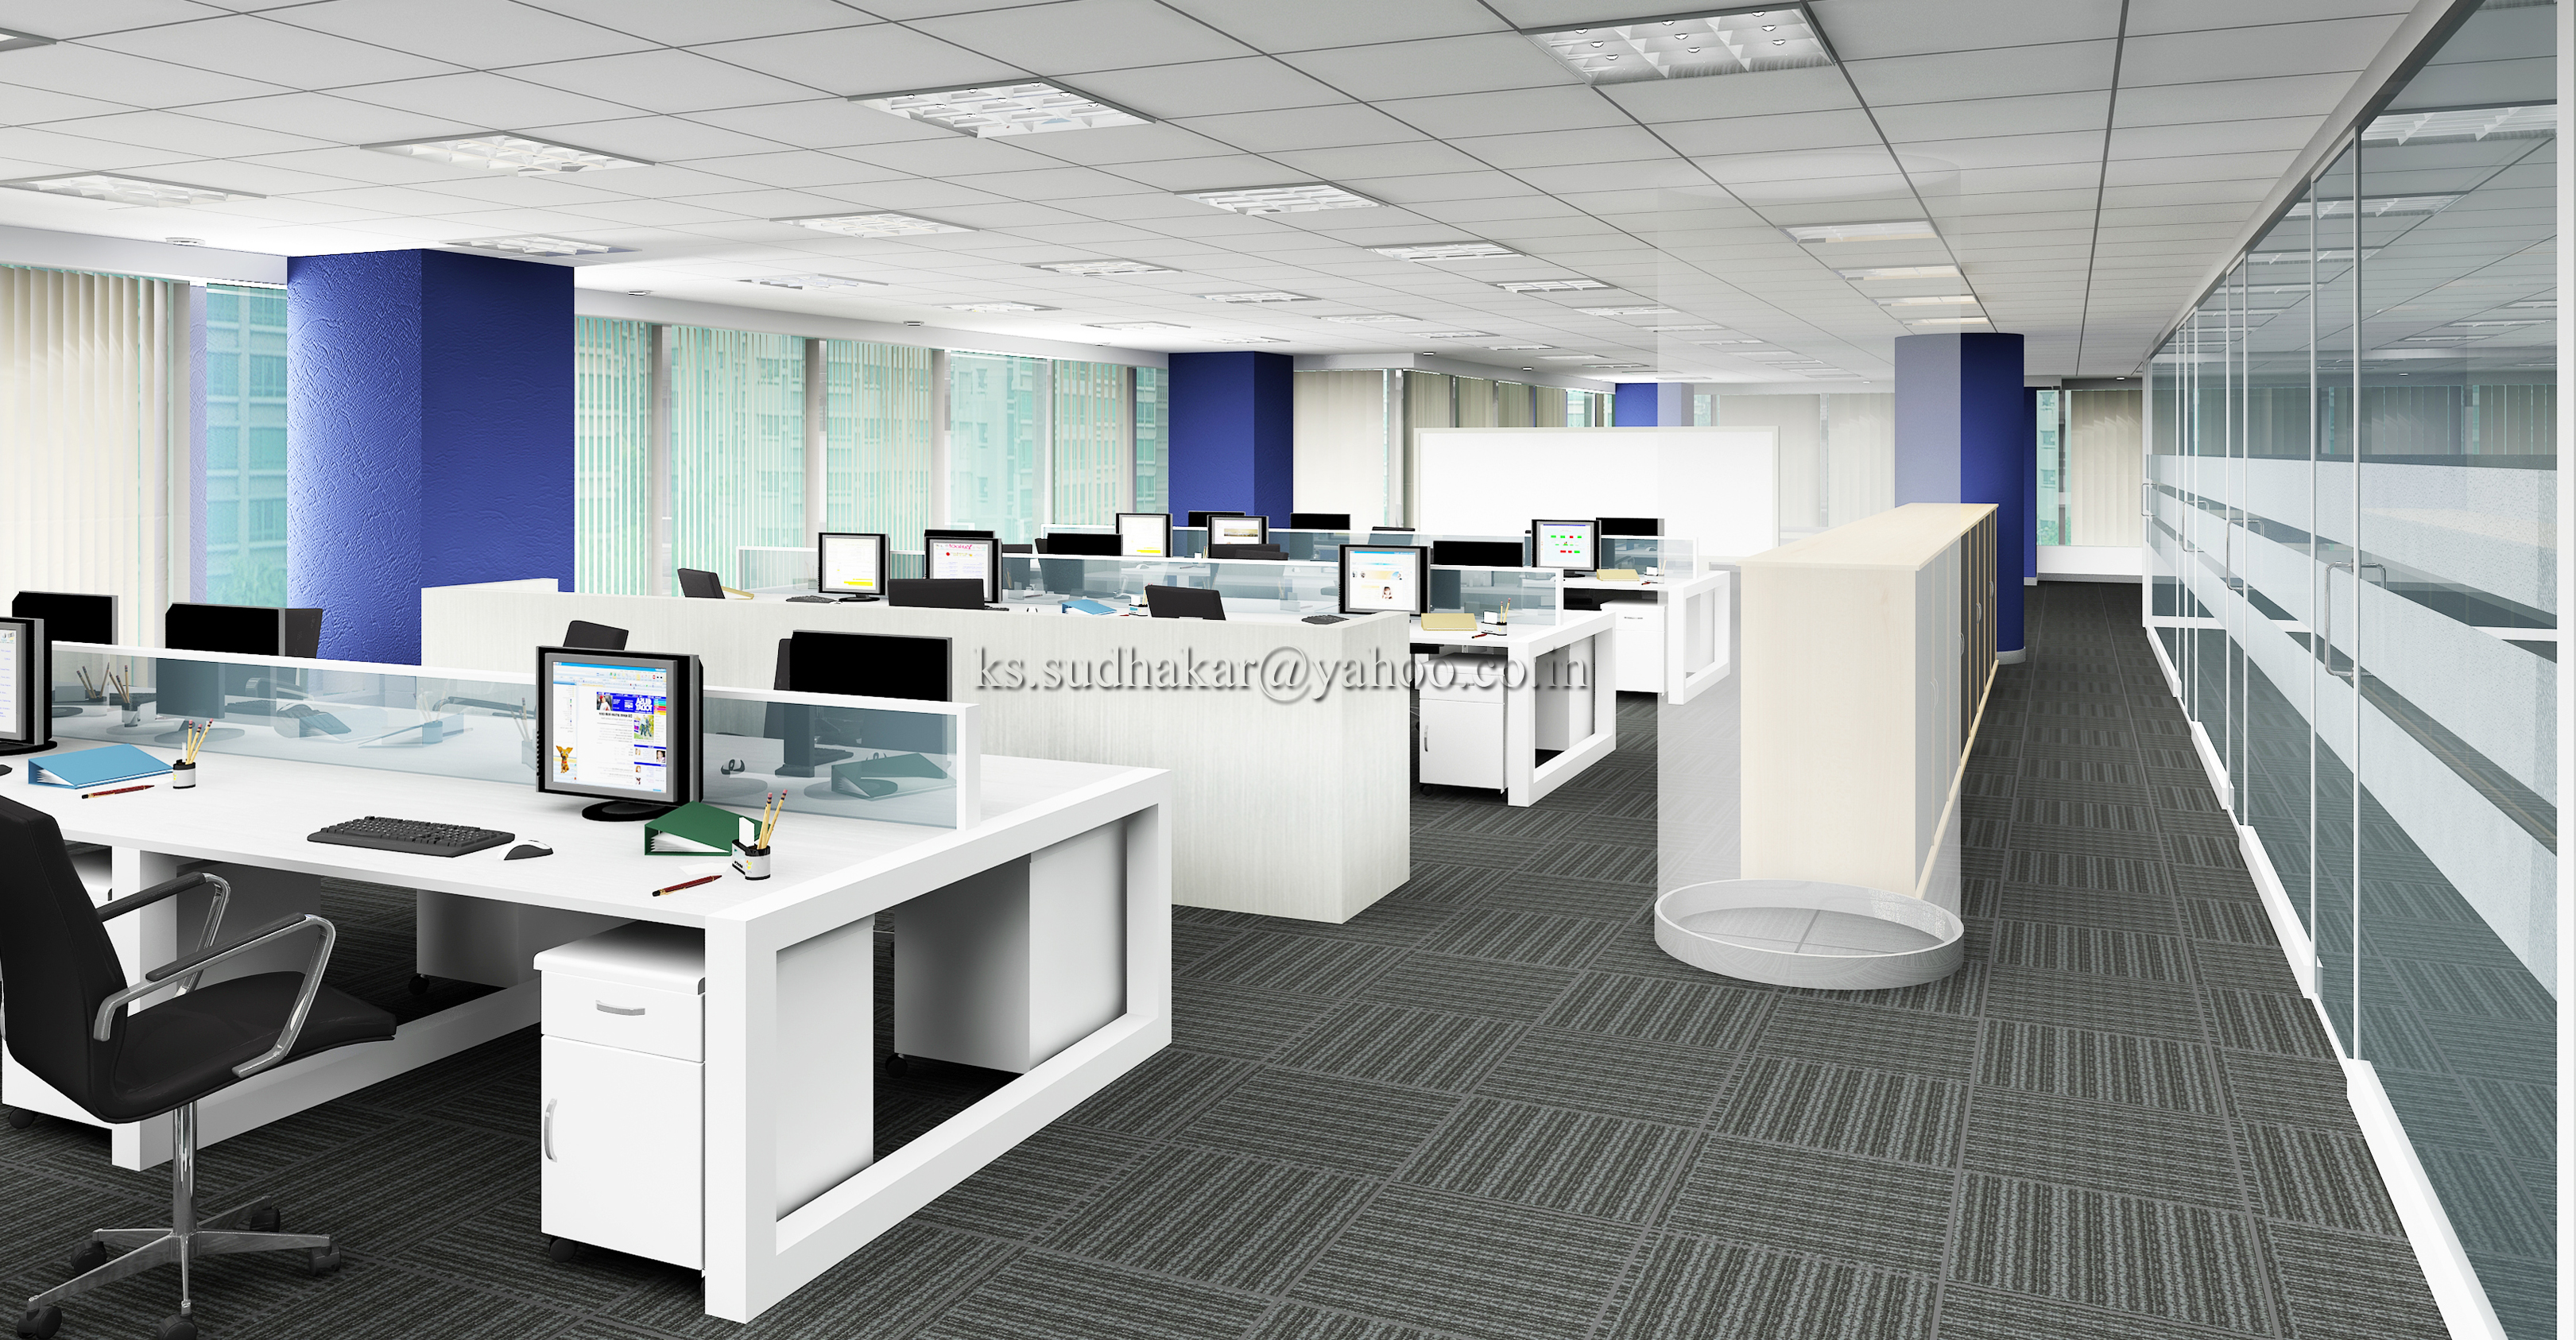 interior renderings by sudhakar k s at